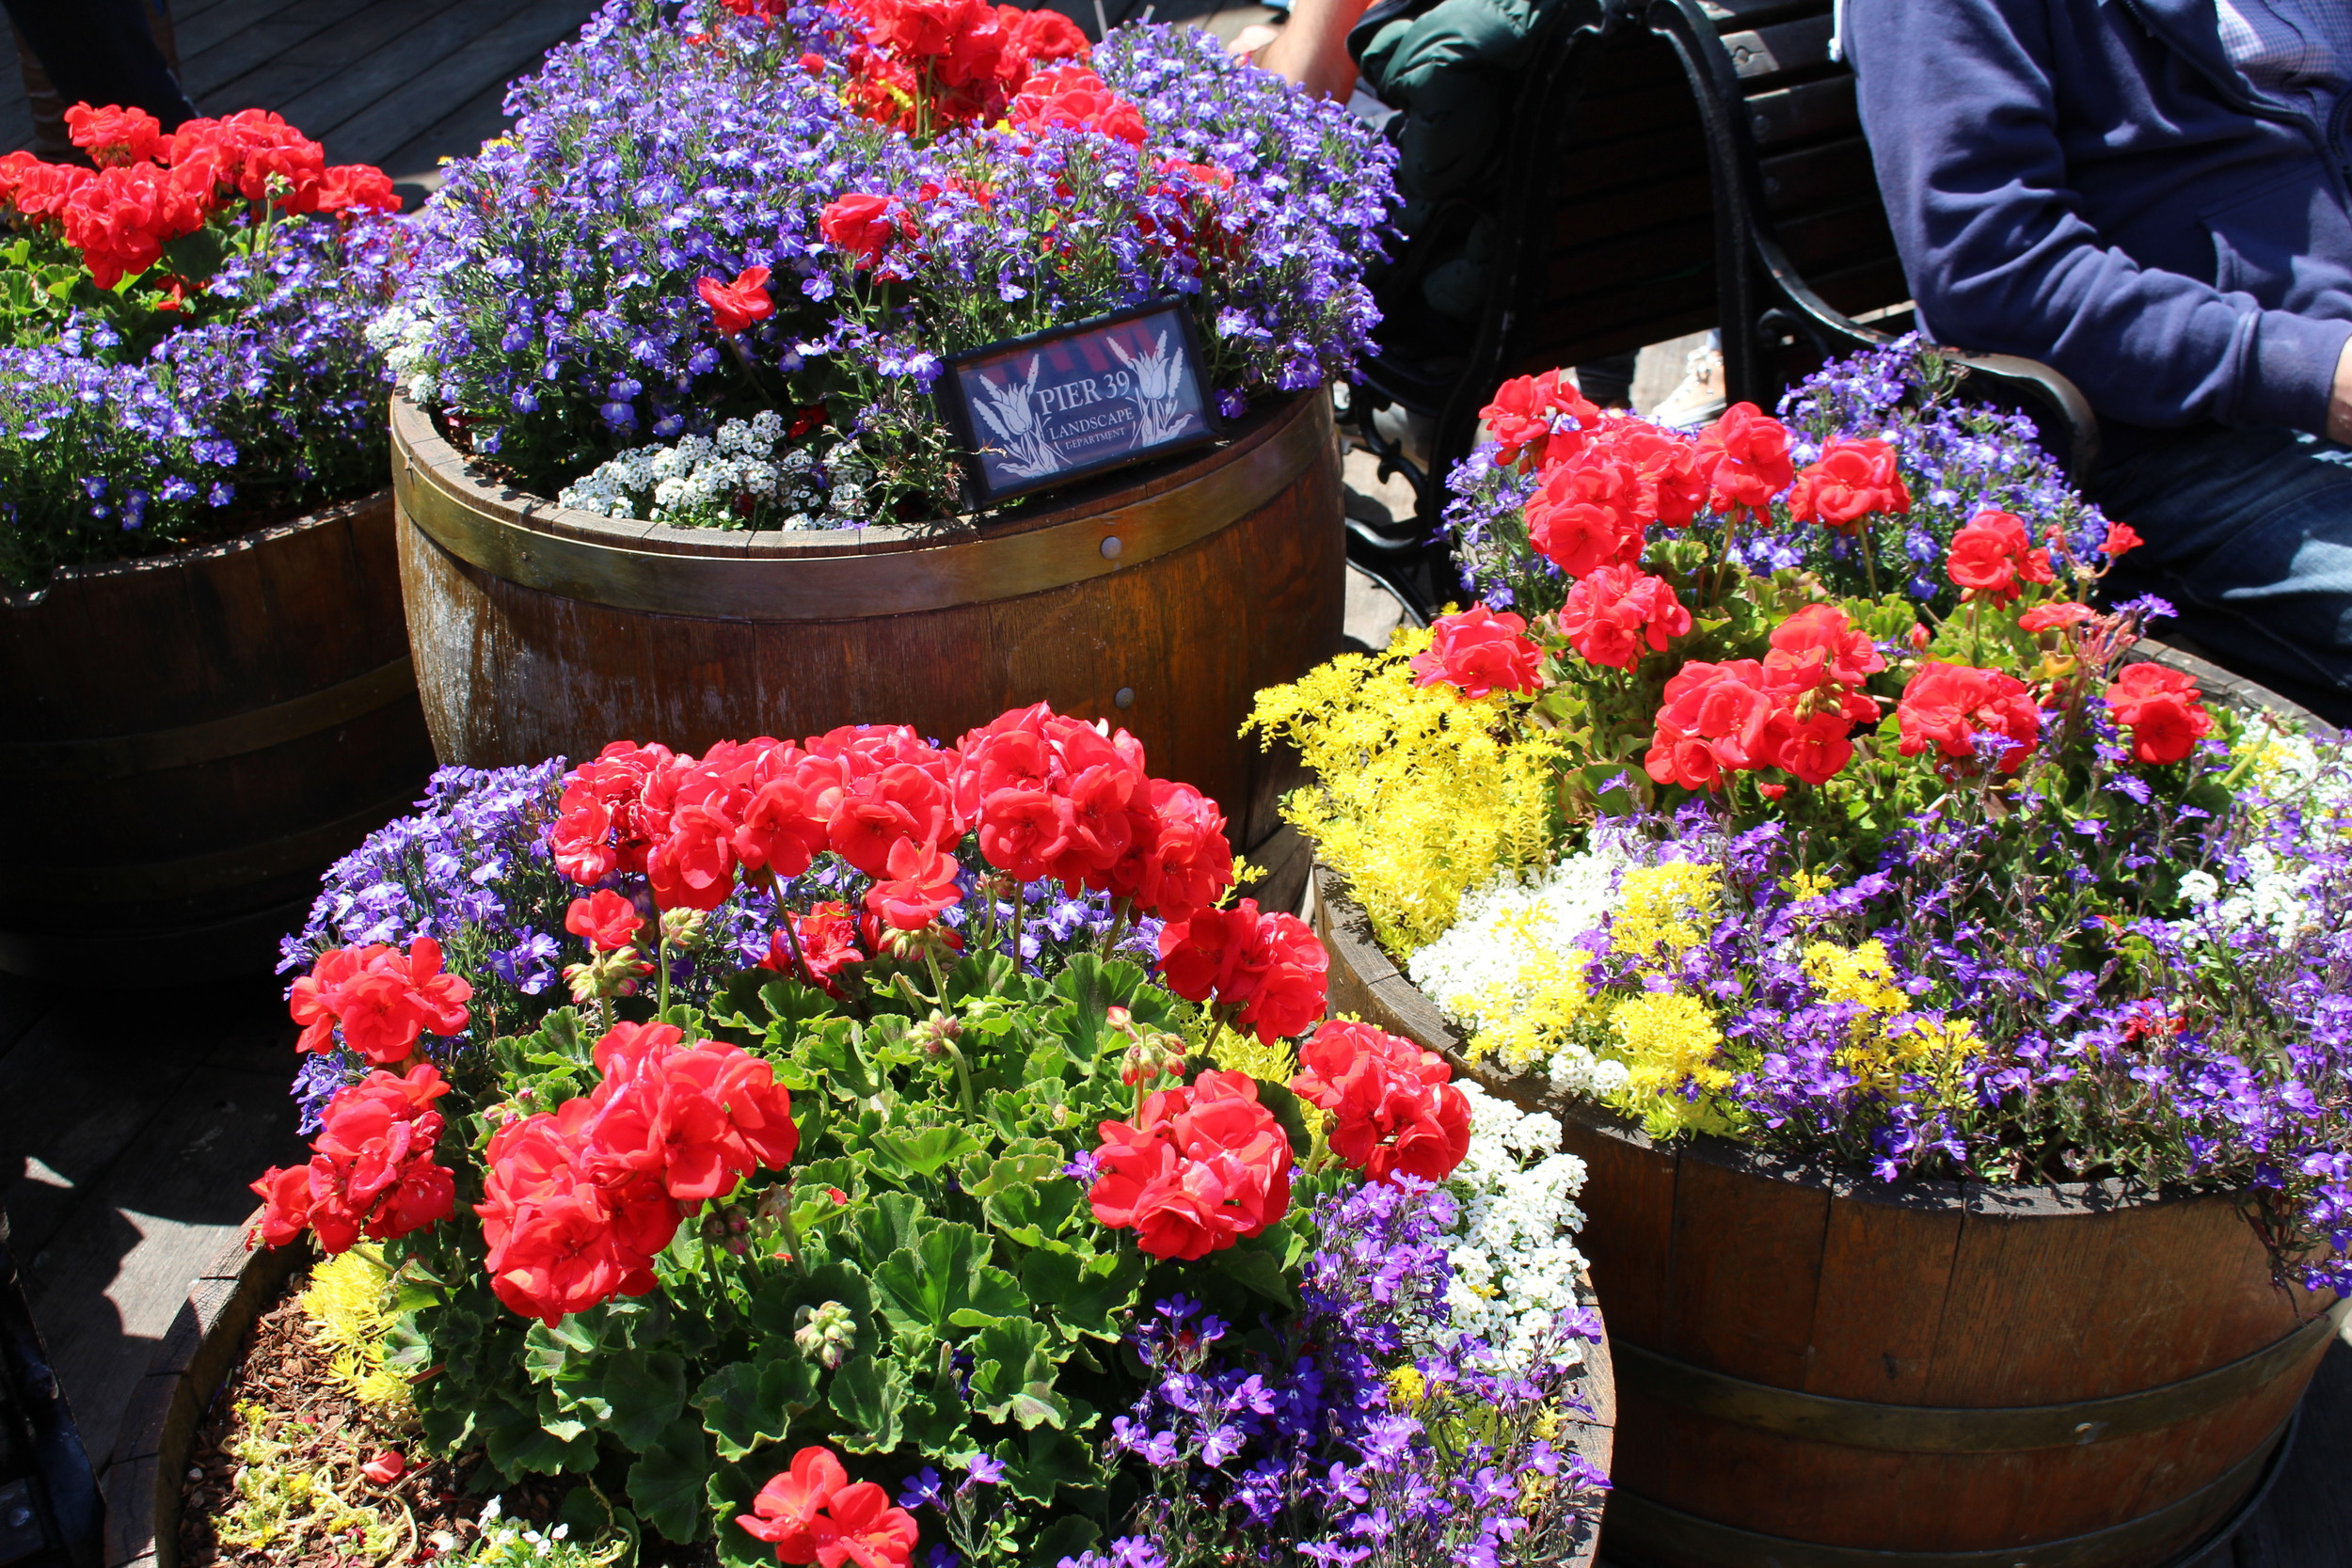 Amazing and colorful flowers at Pier 39.